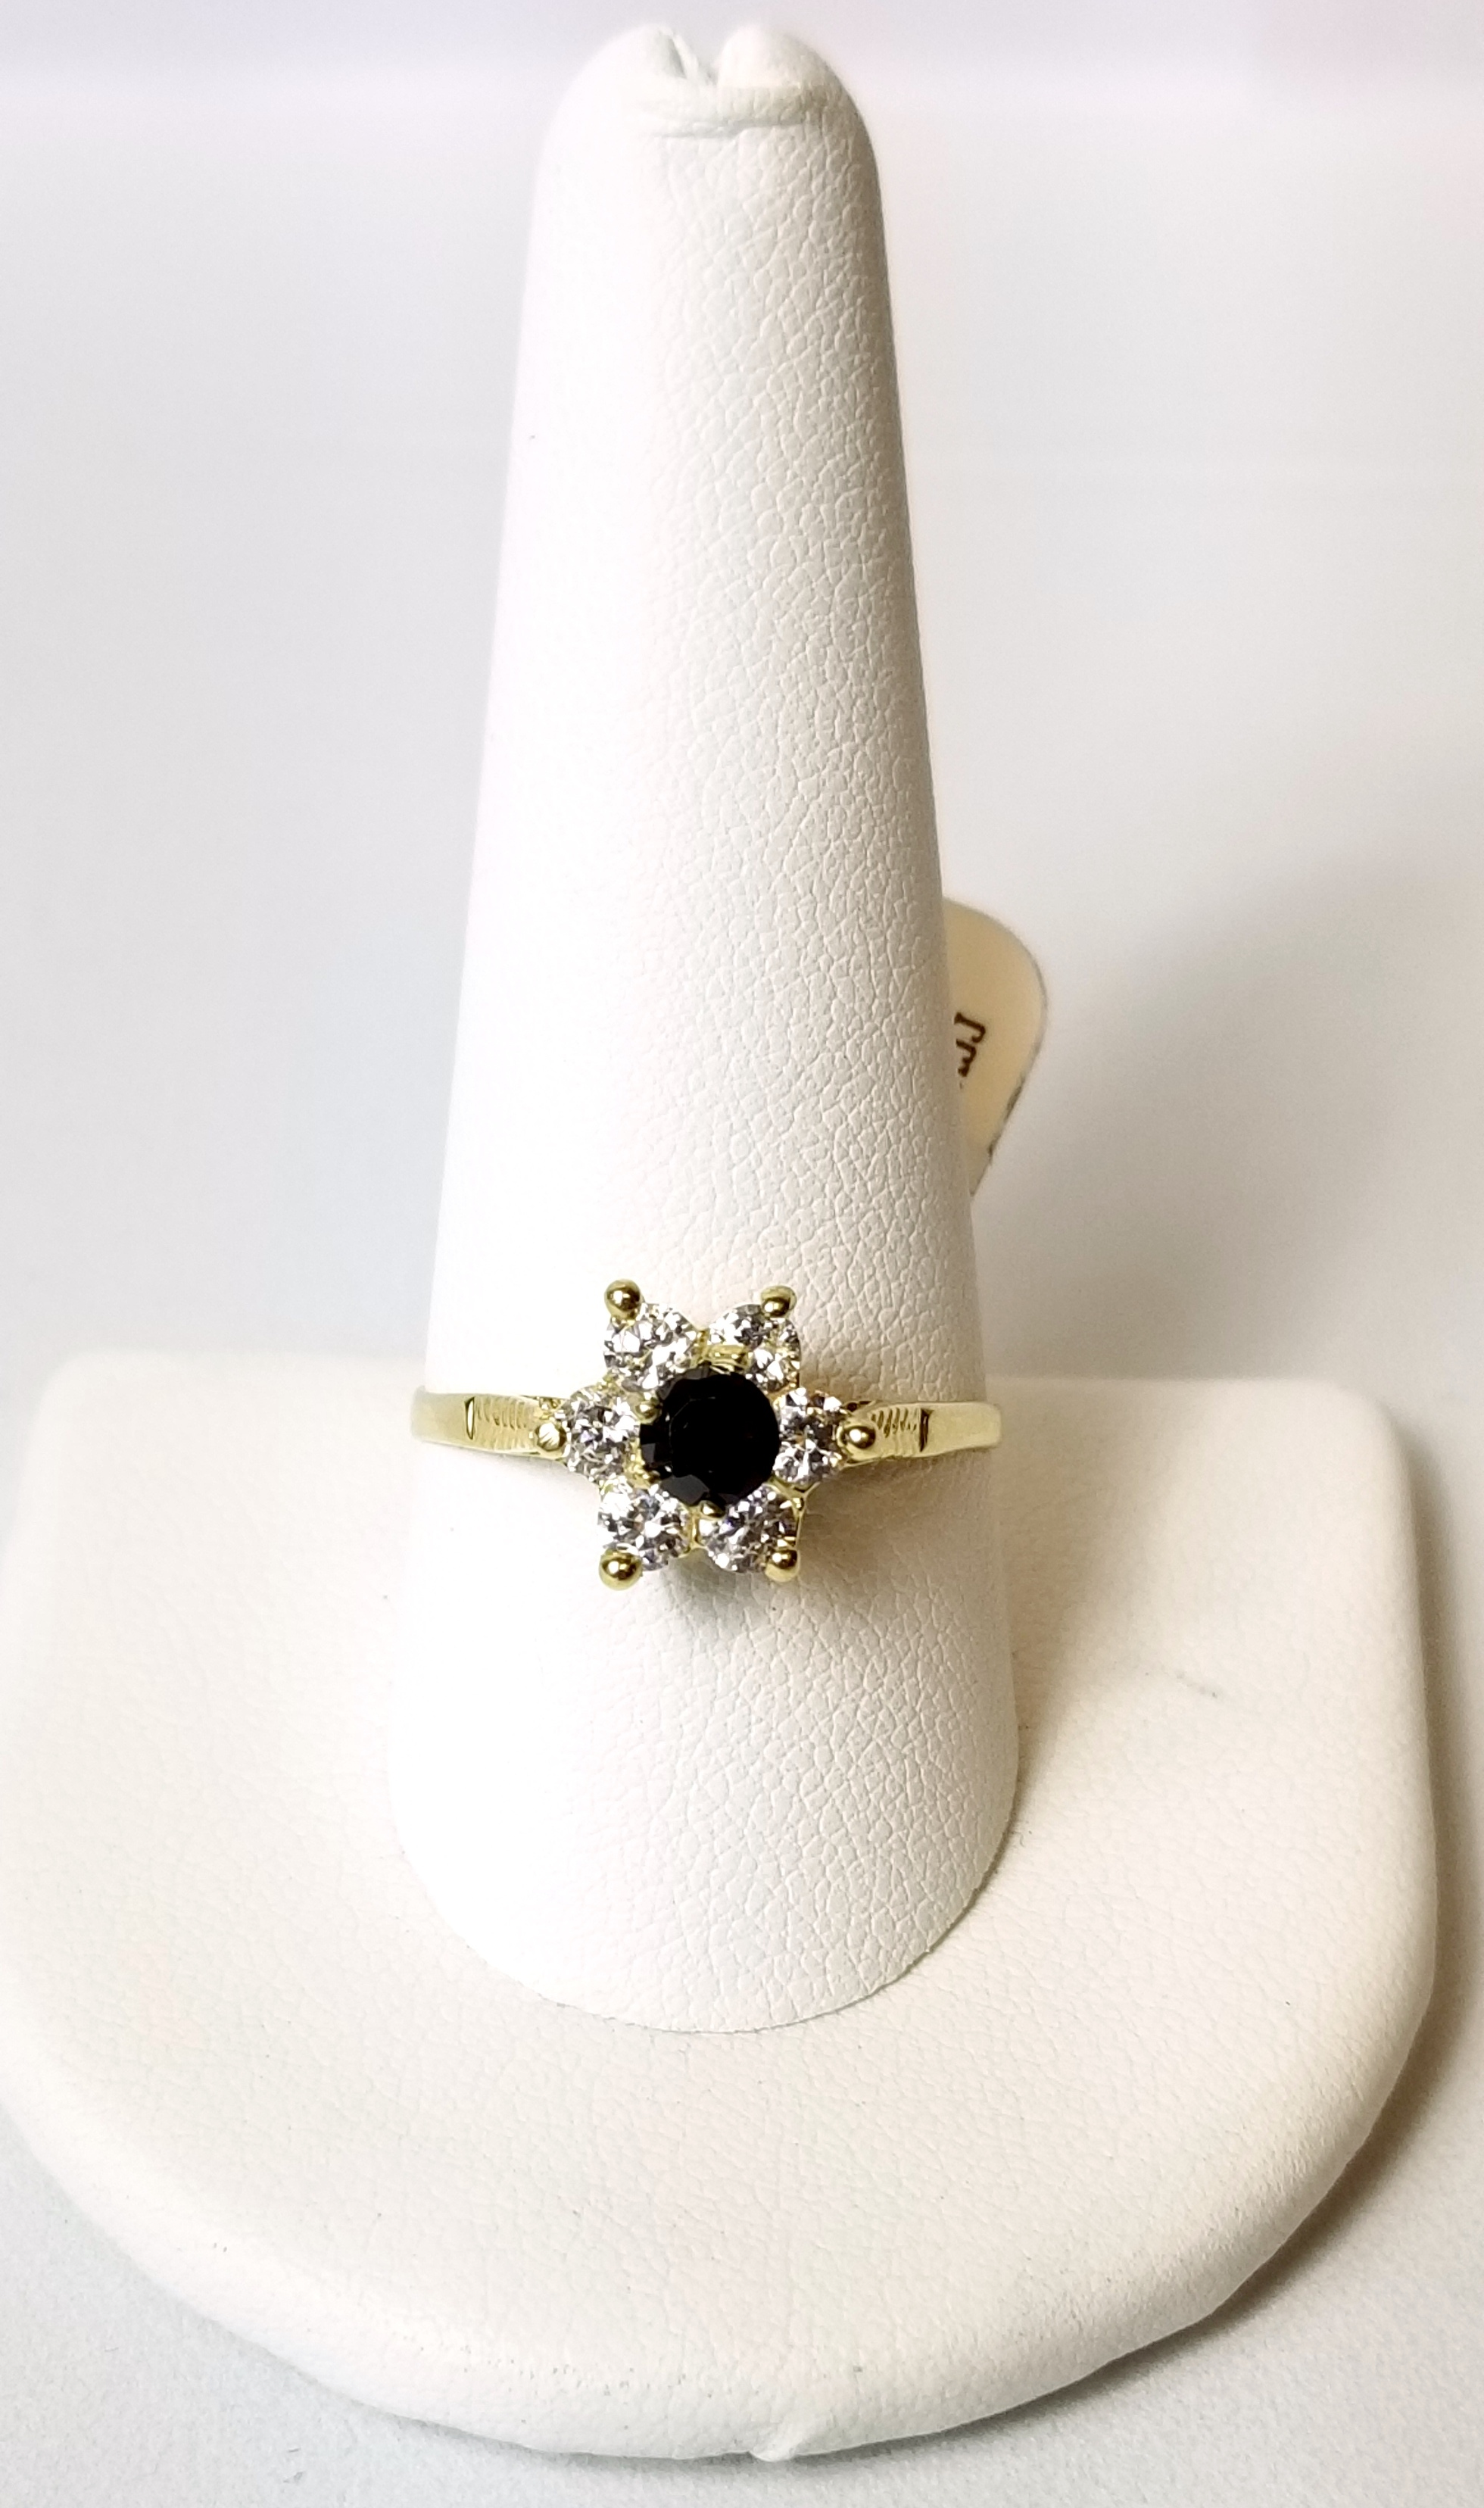 14K Yellow Gold 2.0g Fashion Flower Ring with Clear Stones